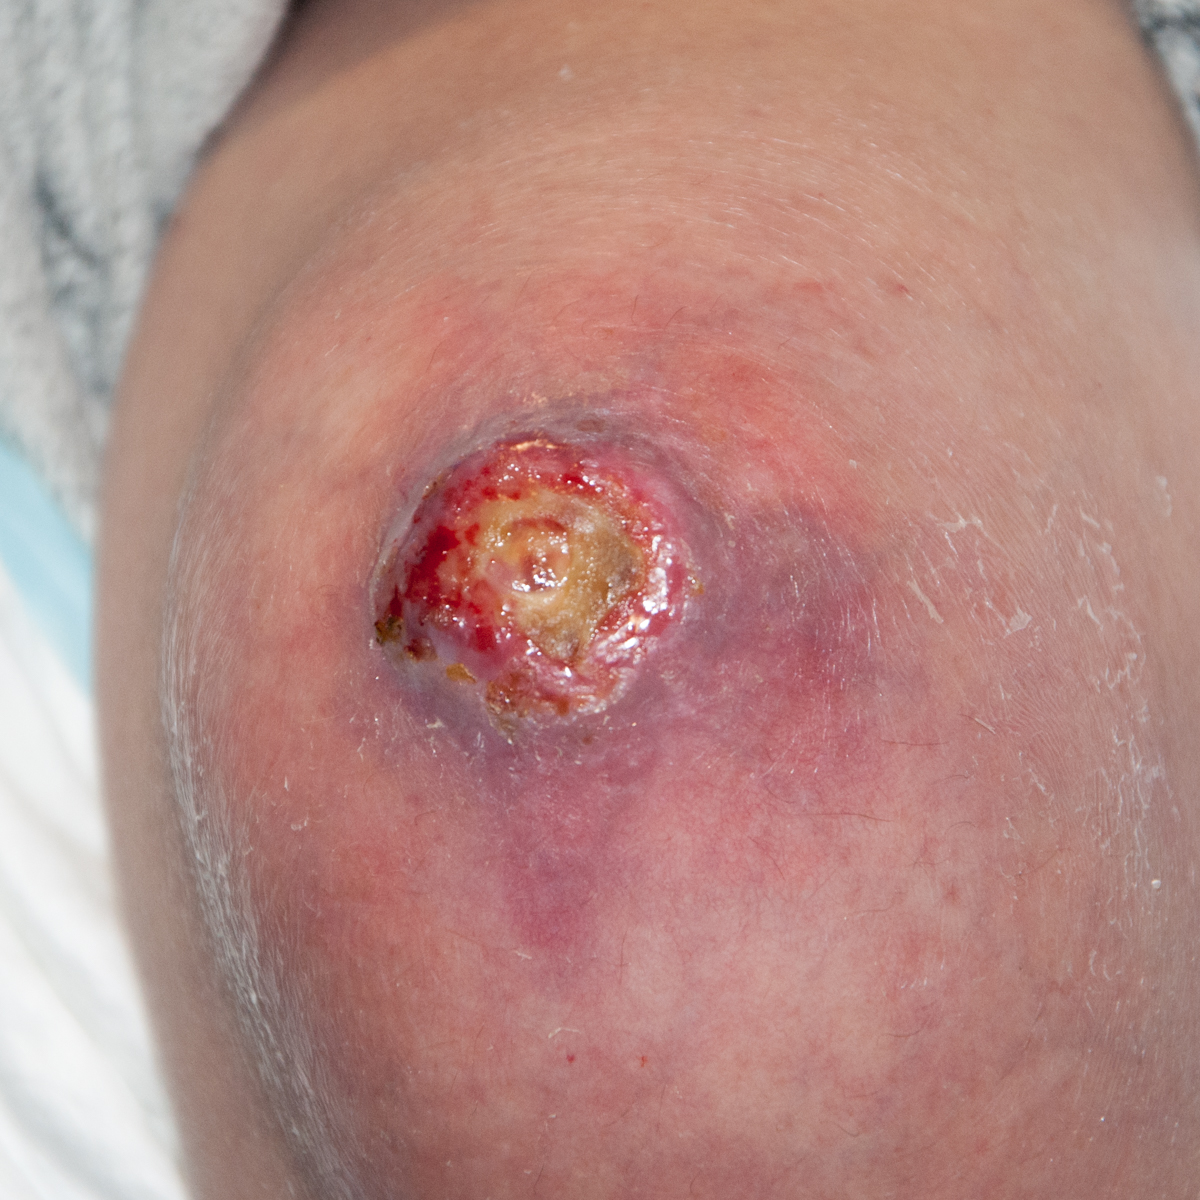 Infected wound on knee